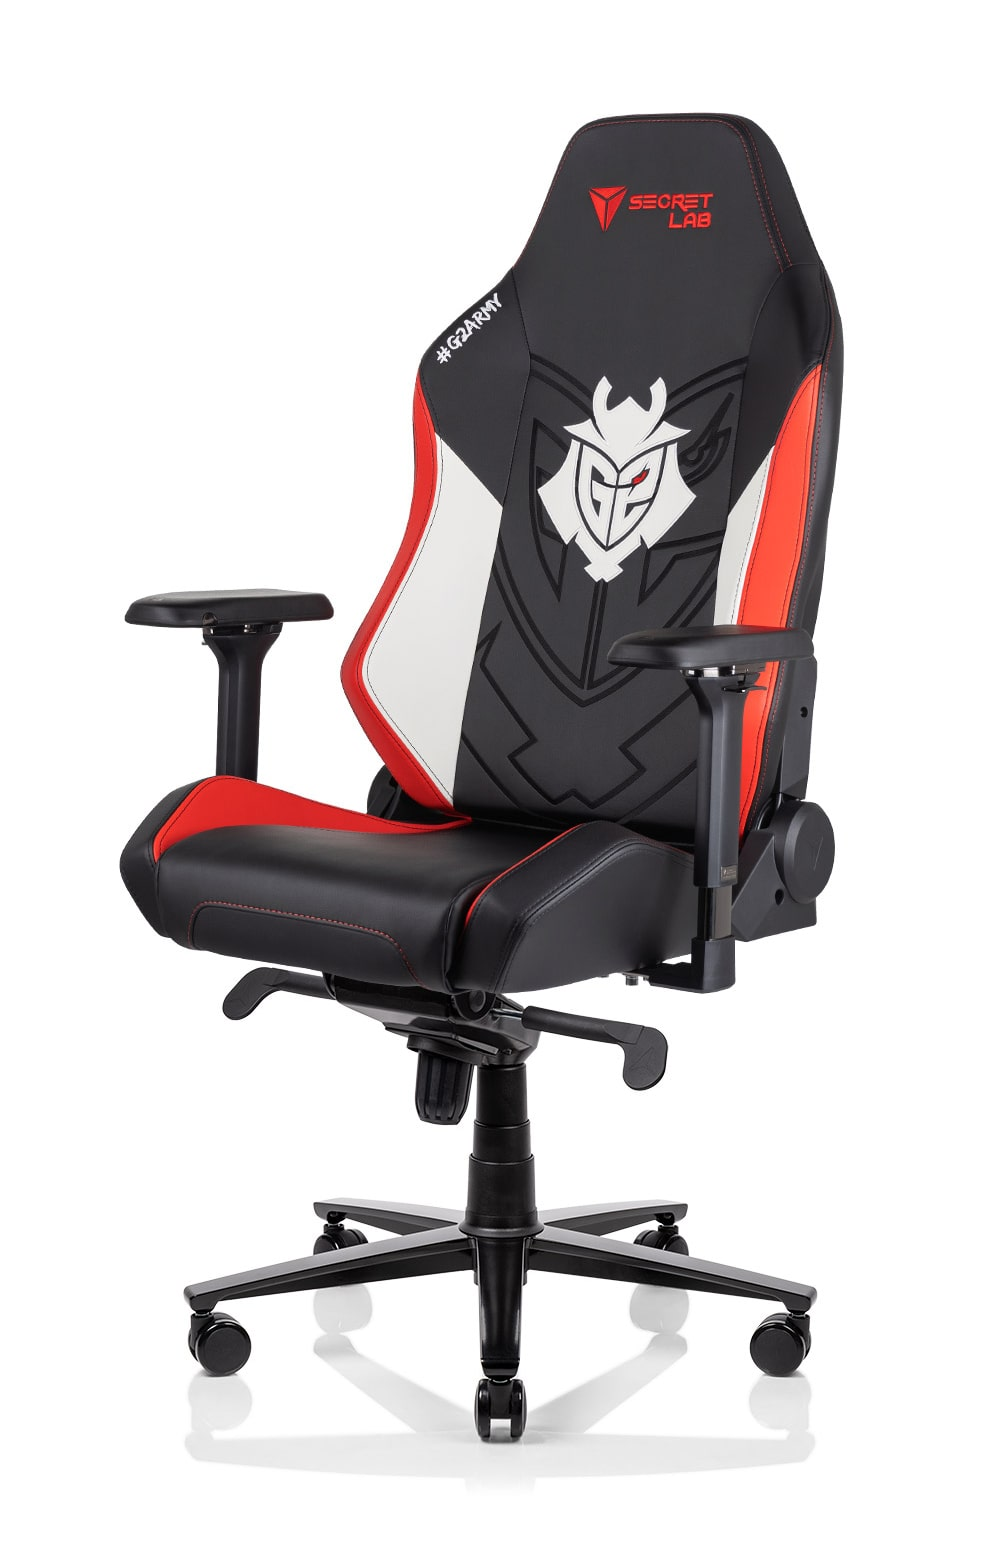 Secretlab OMEGA Series- G2 Special EditionGaming Chair